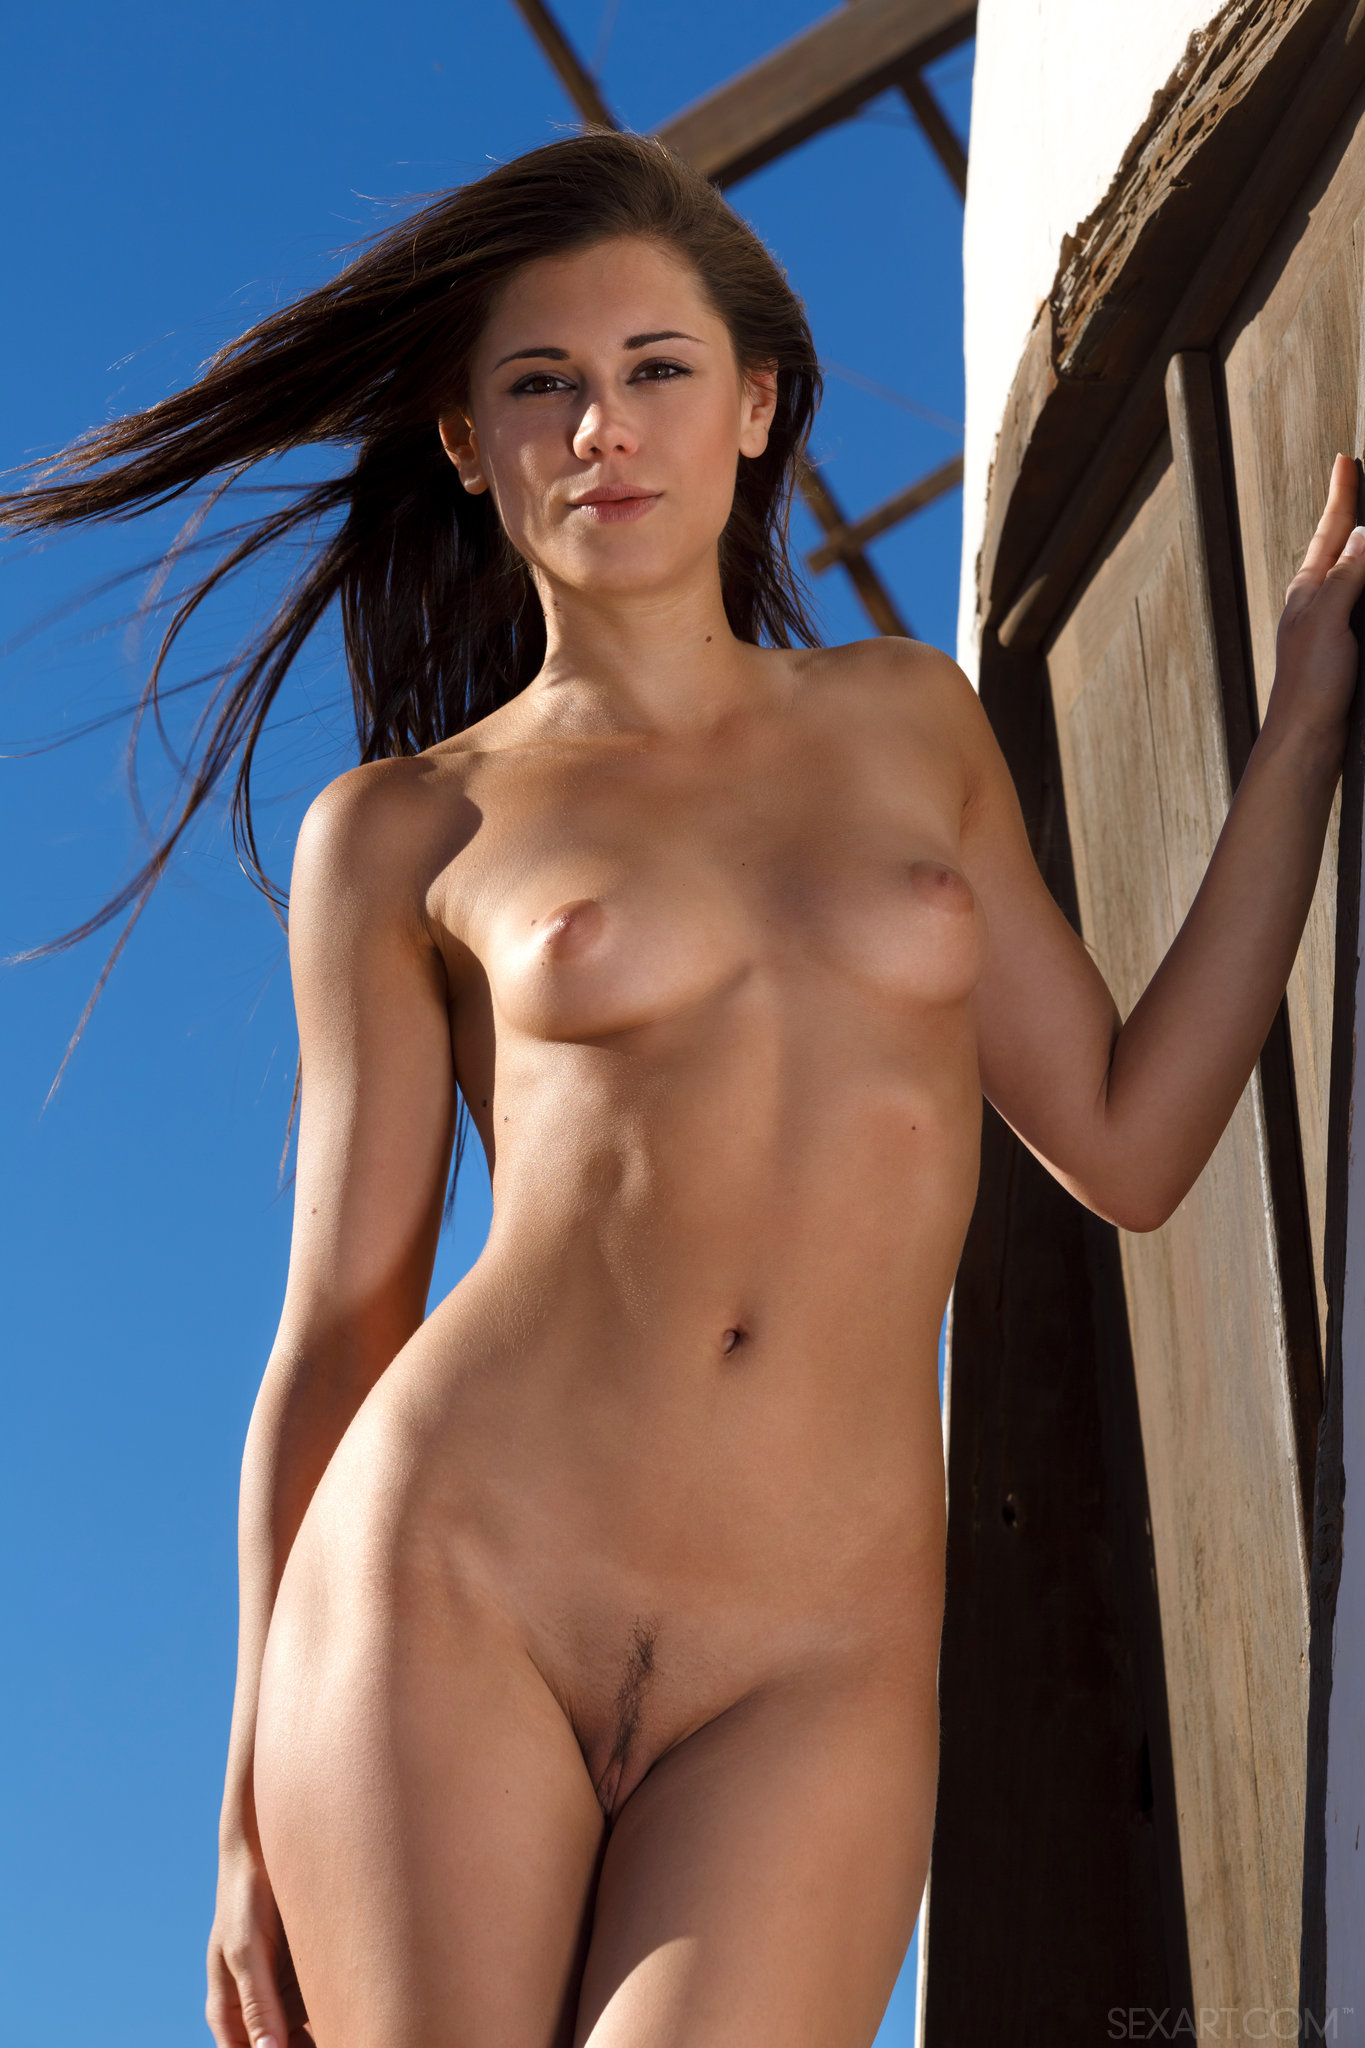 Naked girls with landing strips pity, that